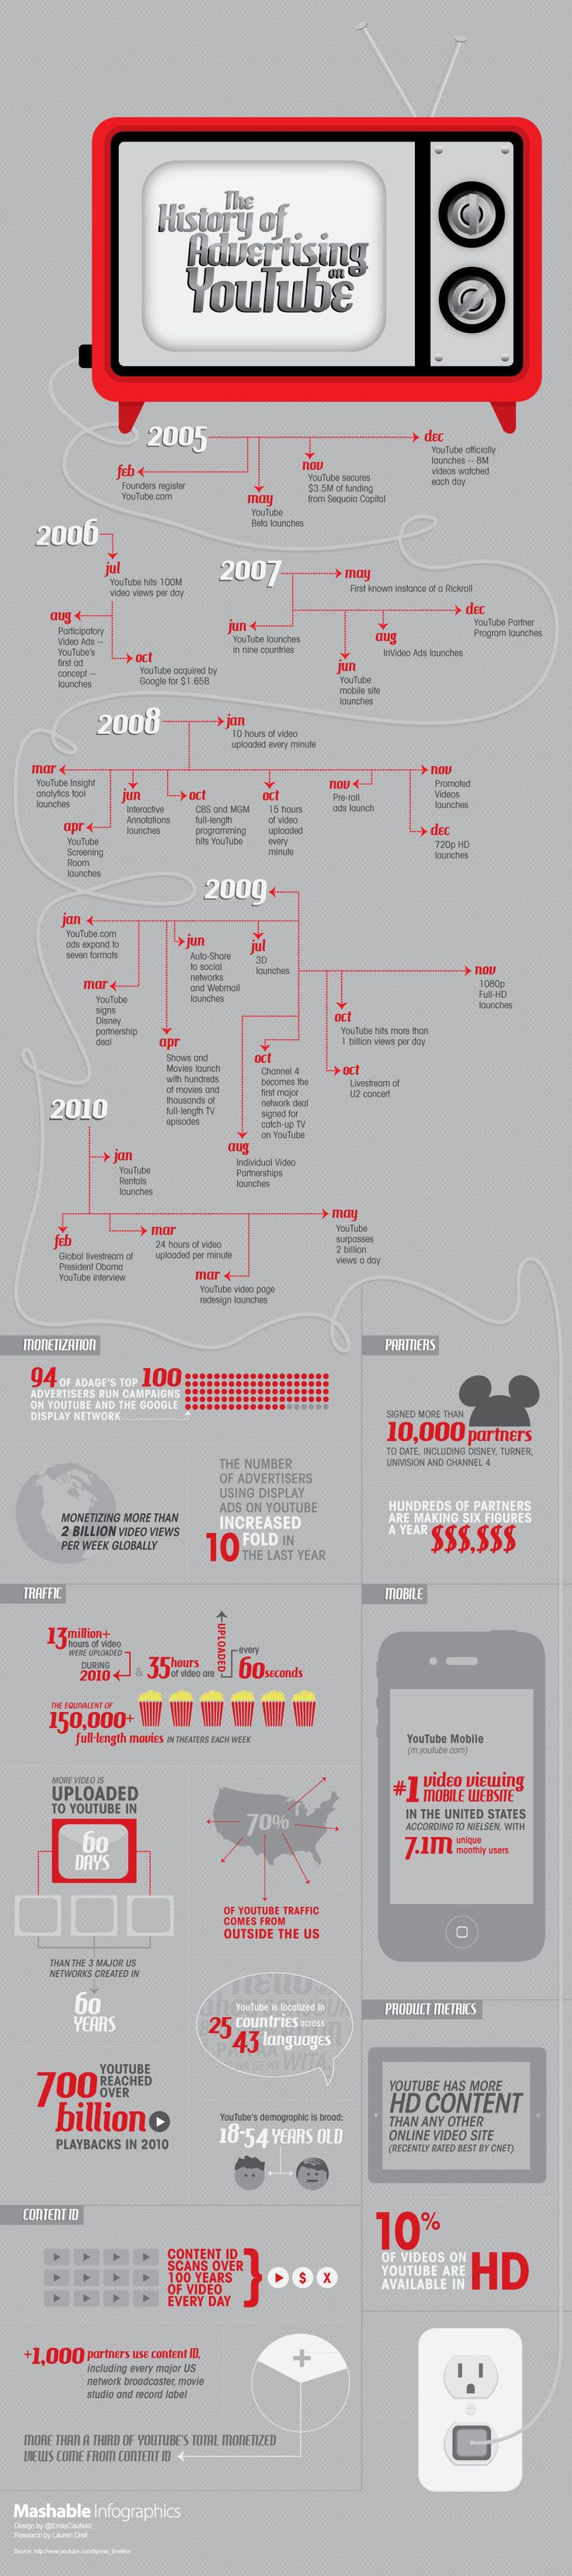 The history of advertising on YouTube #youtube #socialmedia #infographics